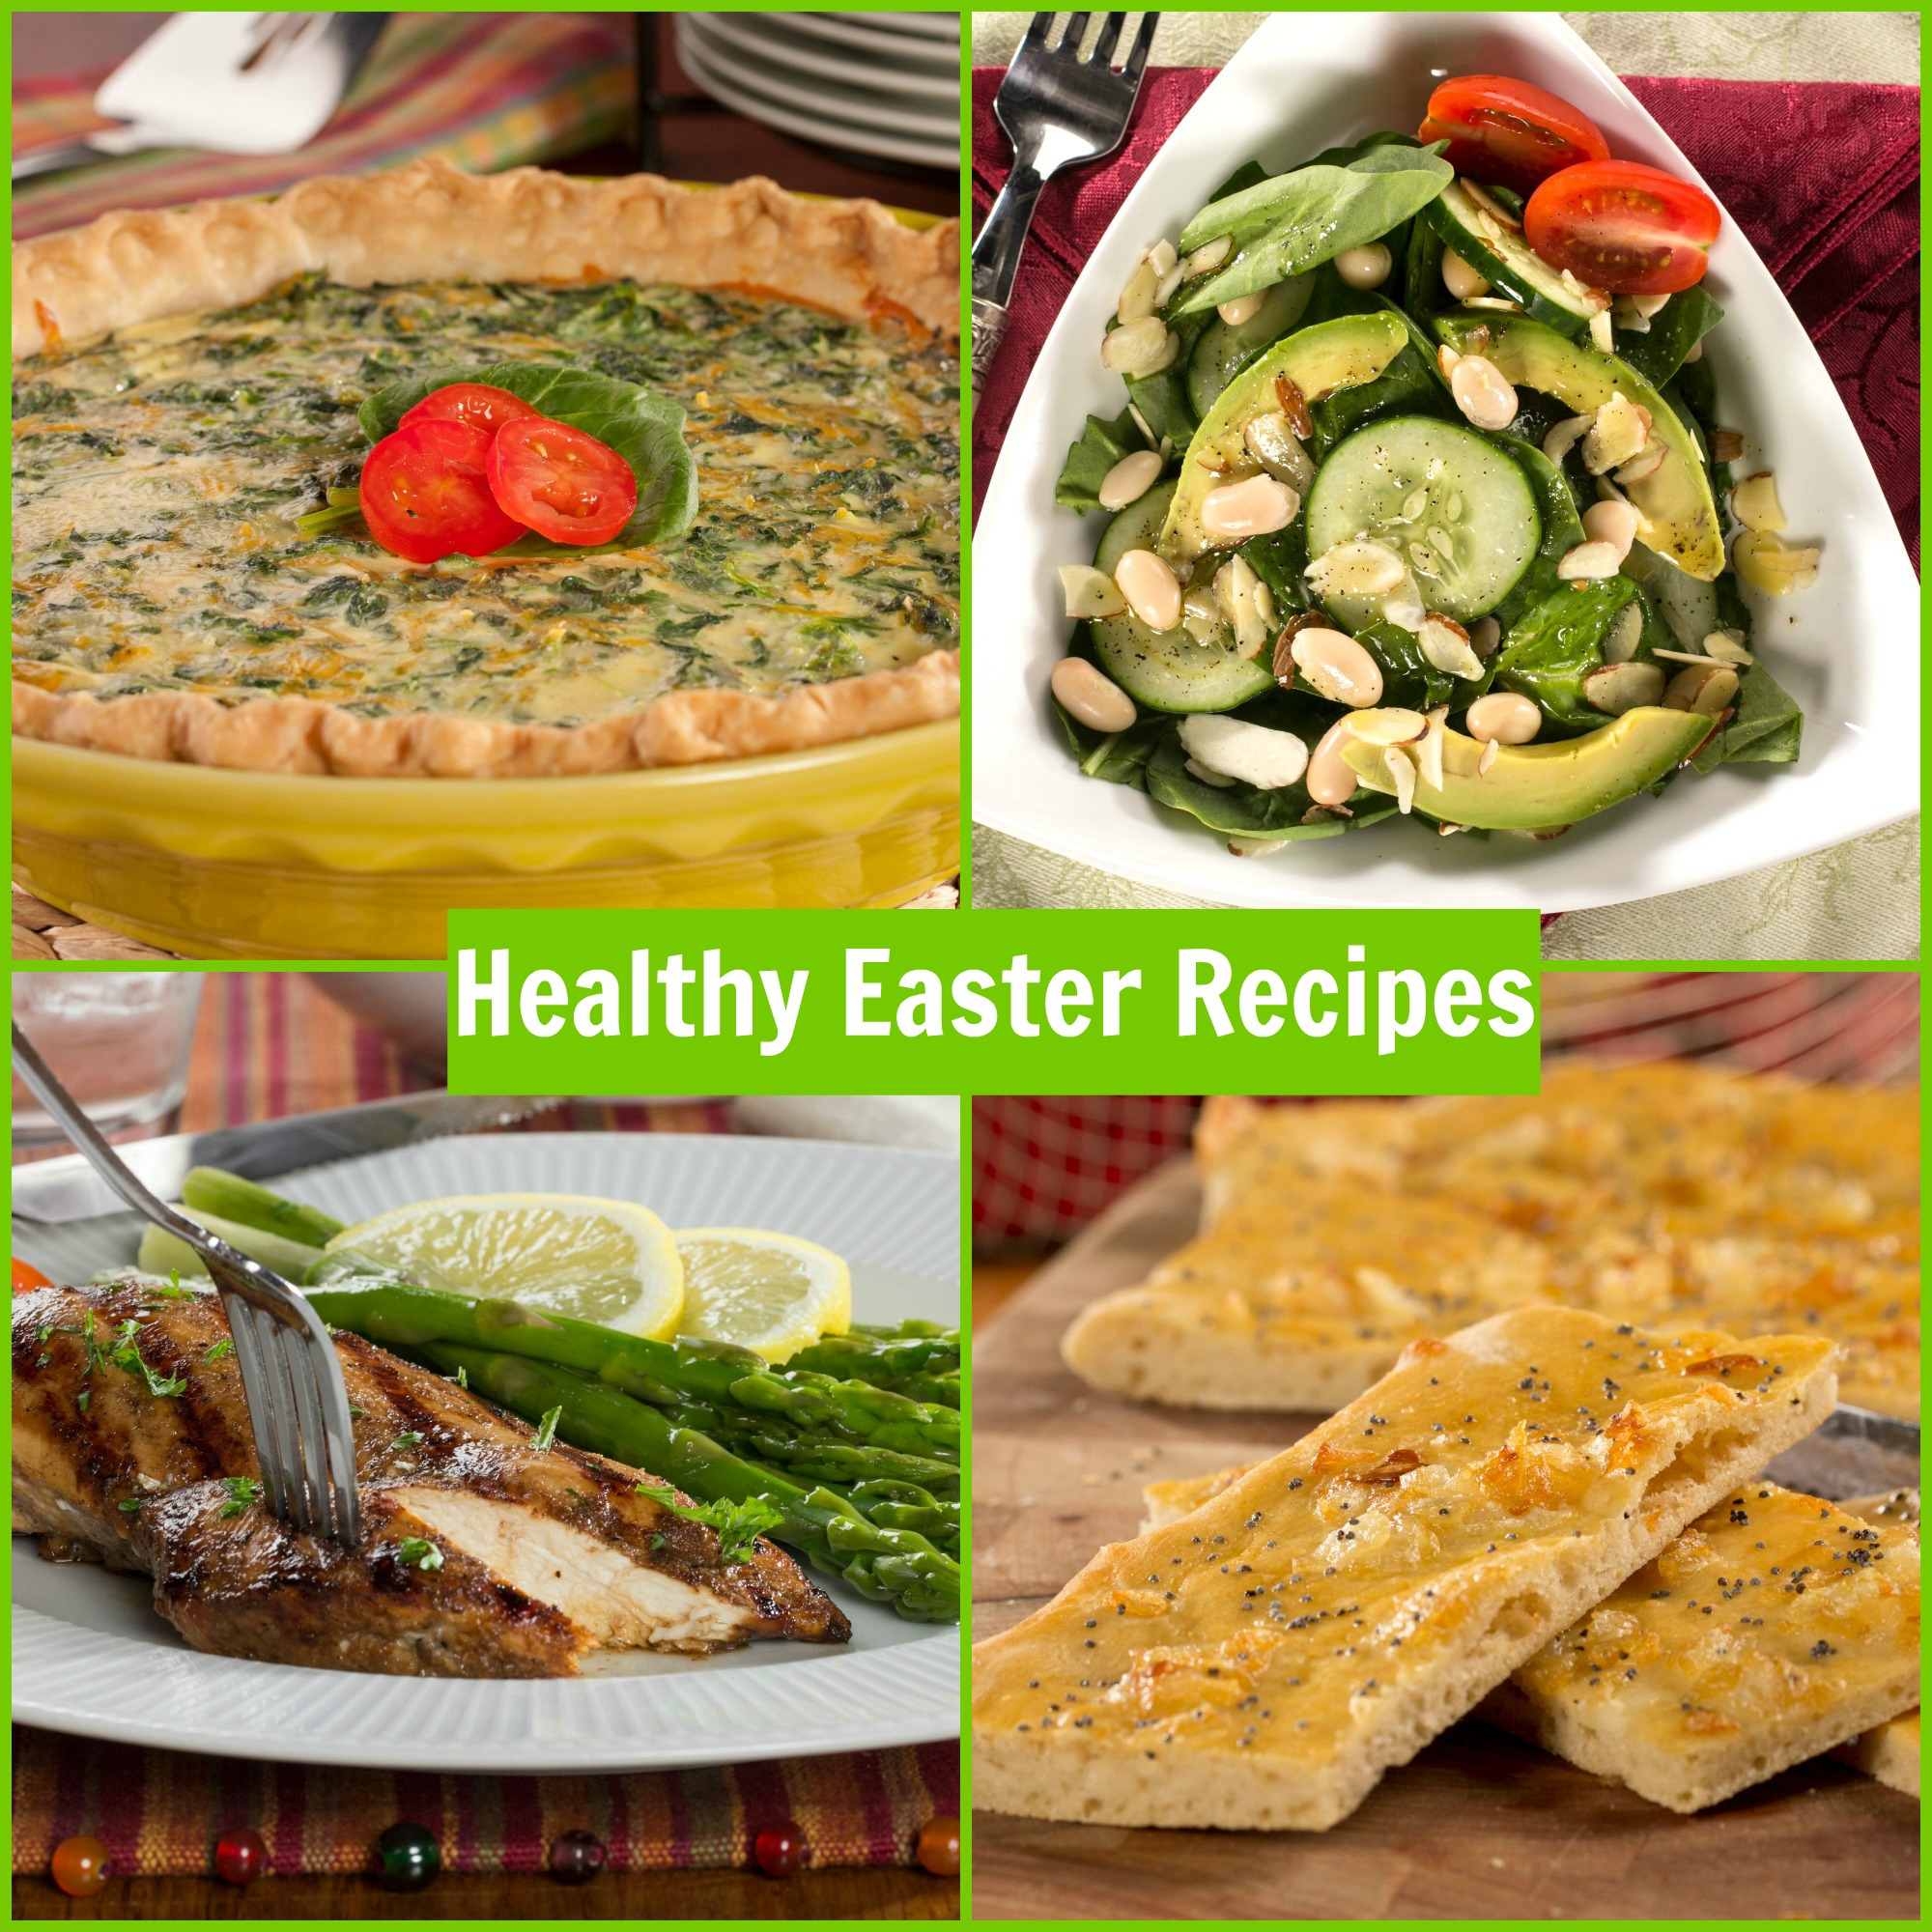 easter dinner ideas free ecookbook - mr. food's blog